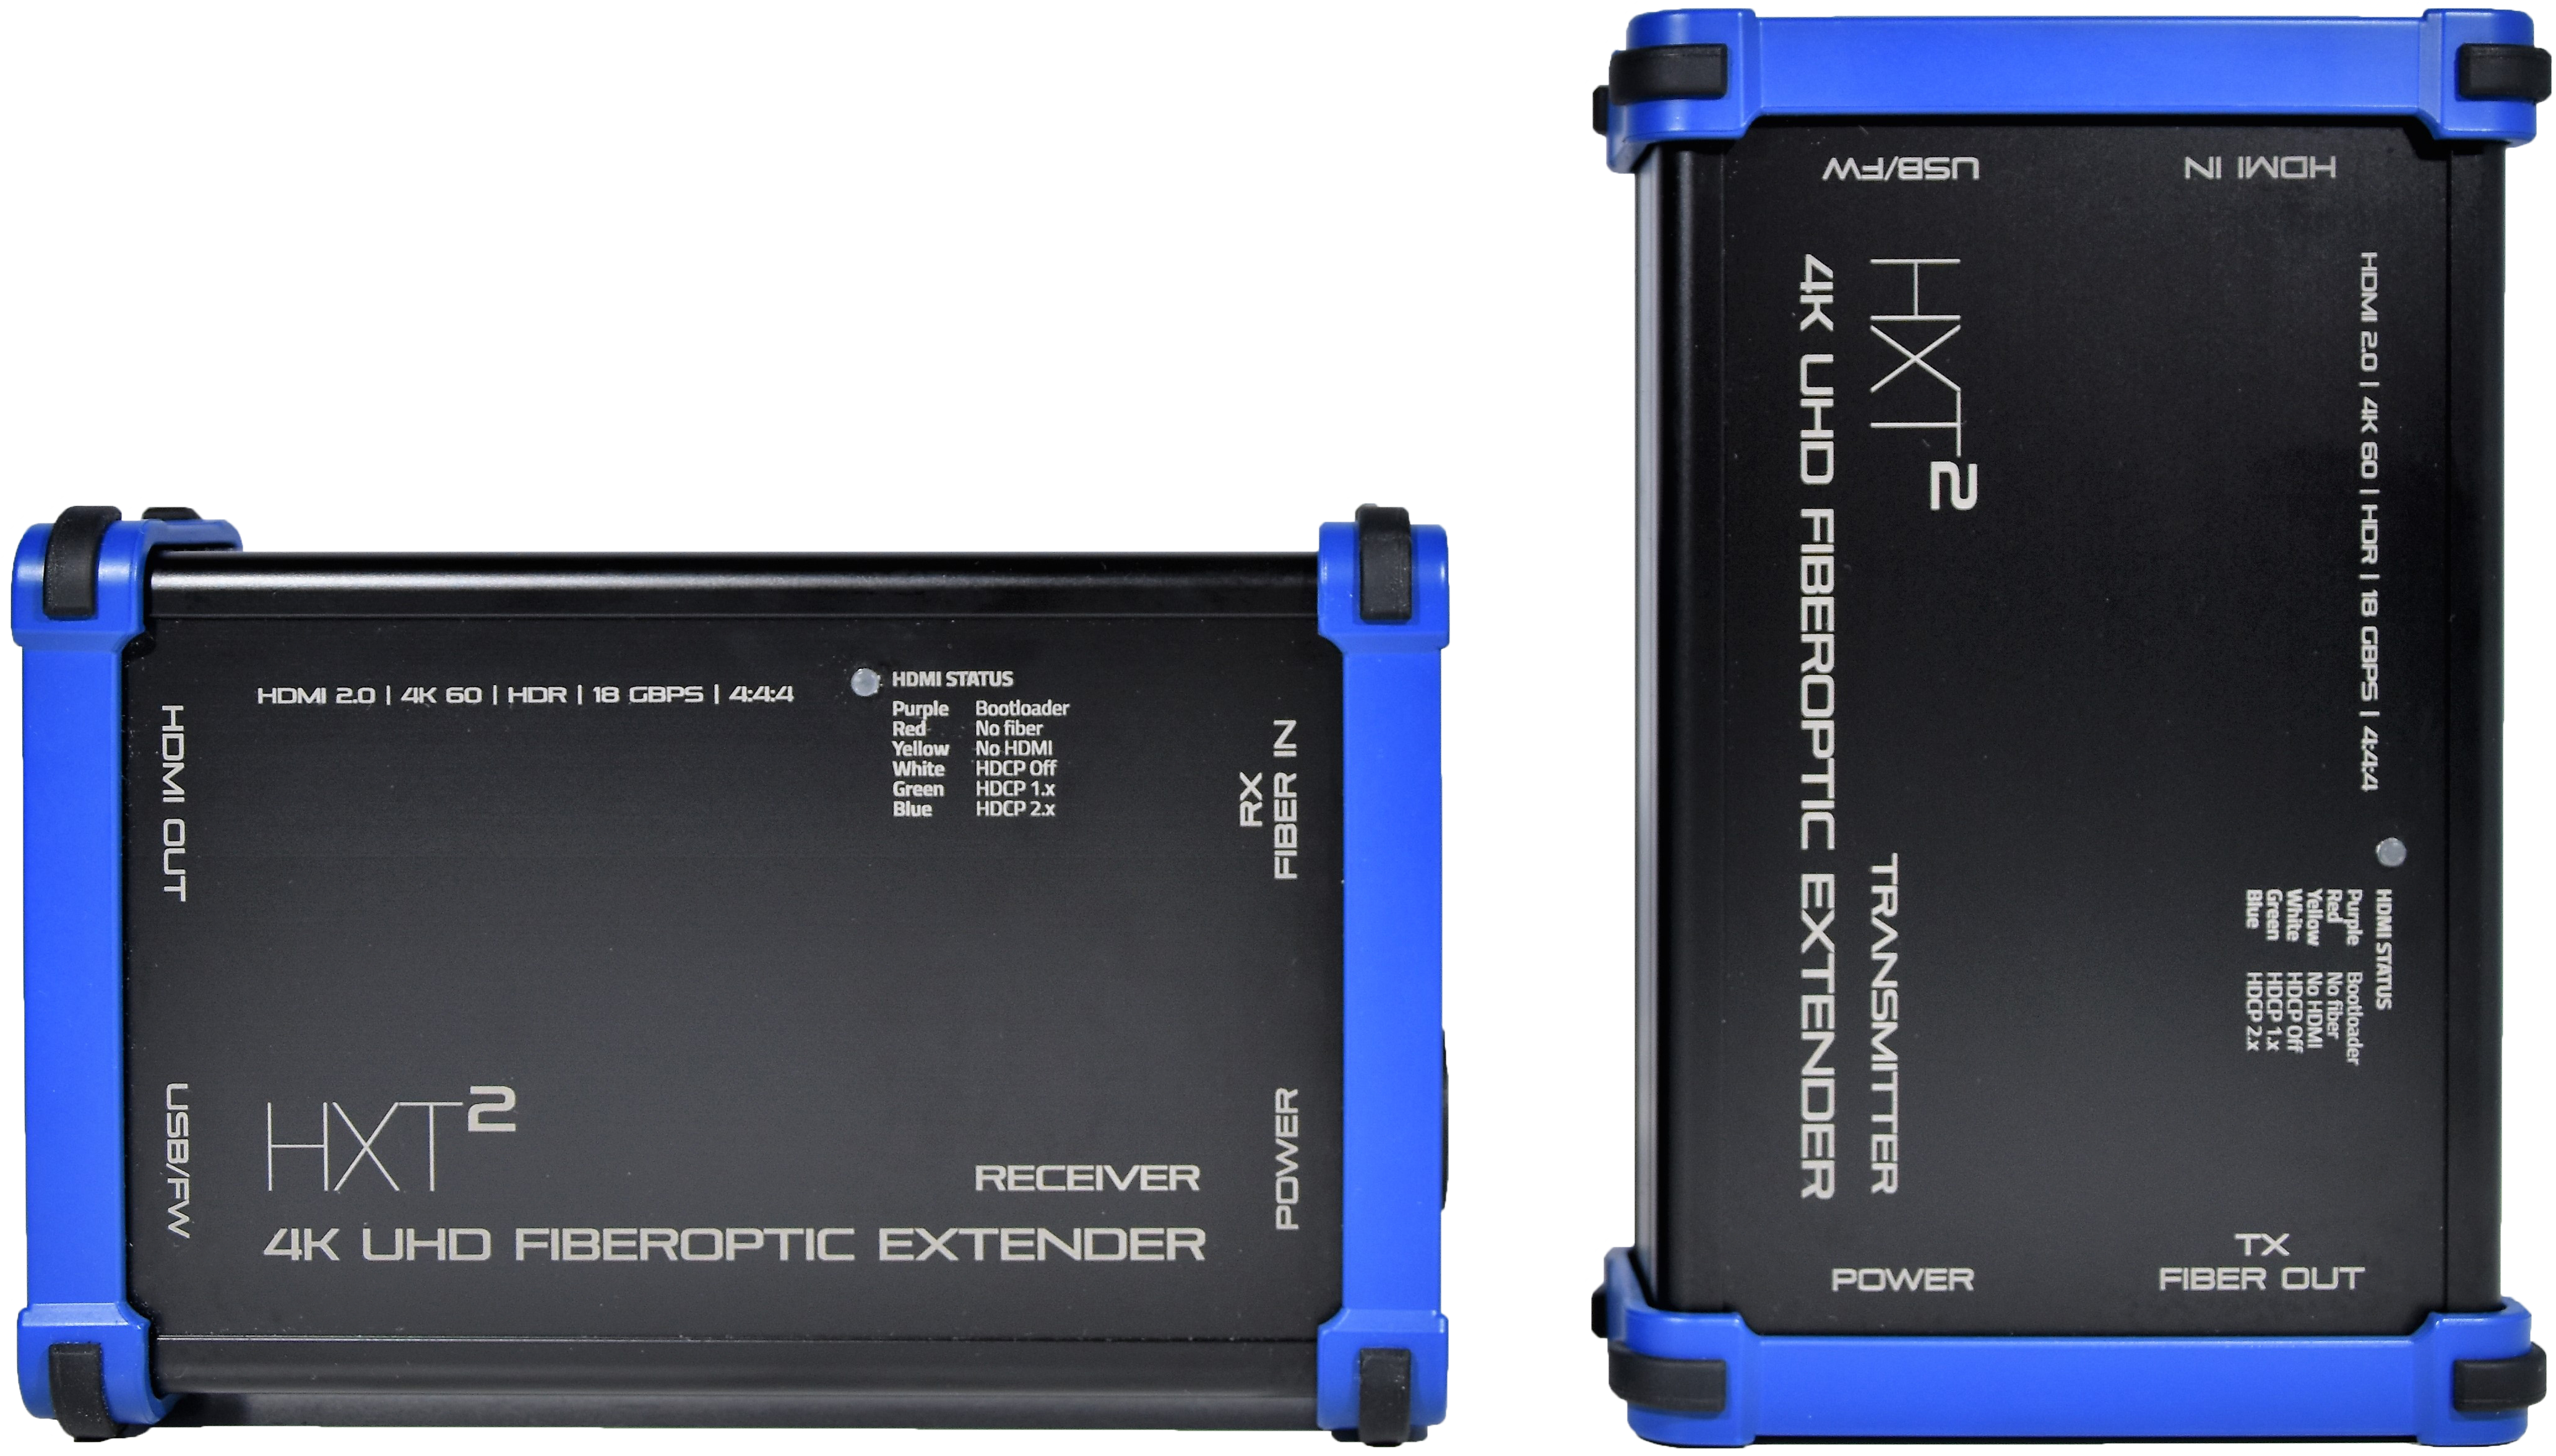 HXT² HDMI over fiber exterdenrs - Heavy Duty Video extenders ruggedized